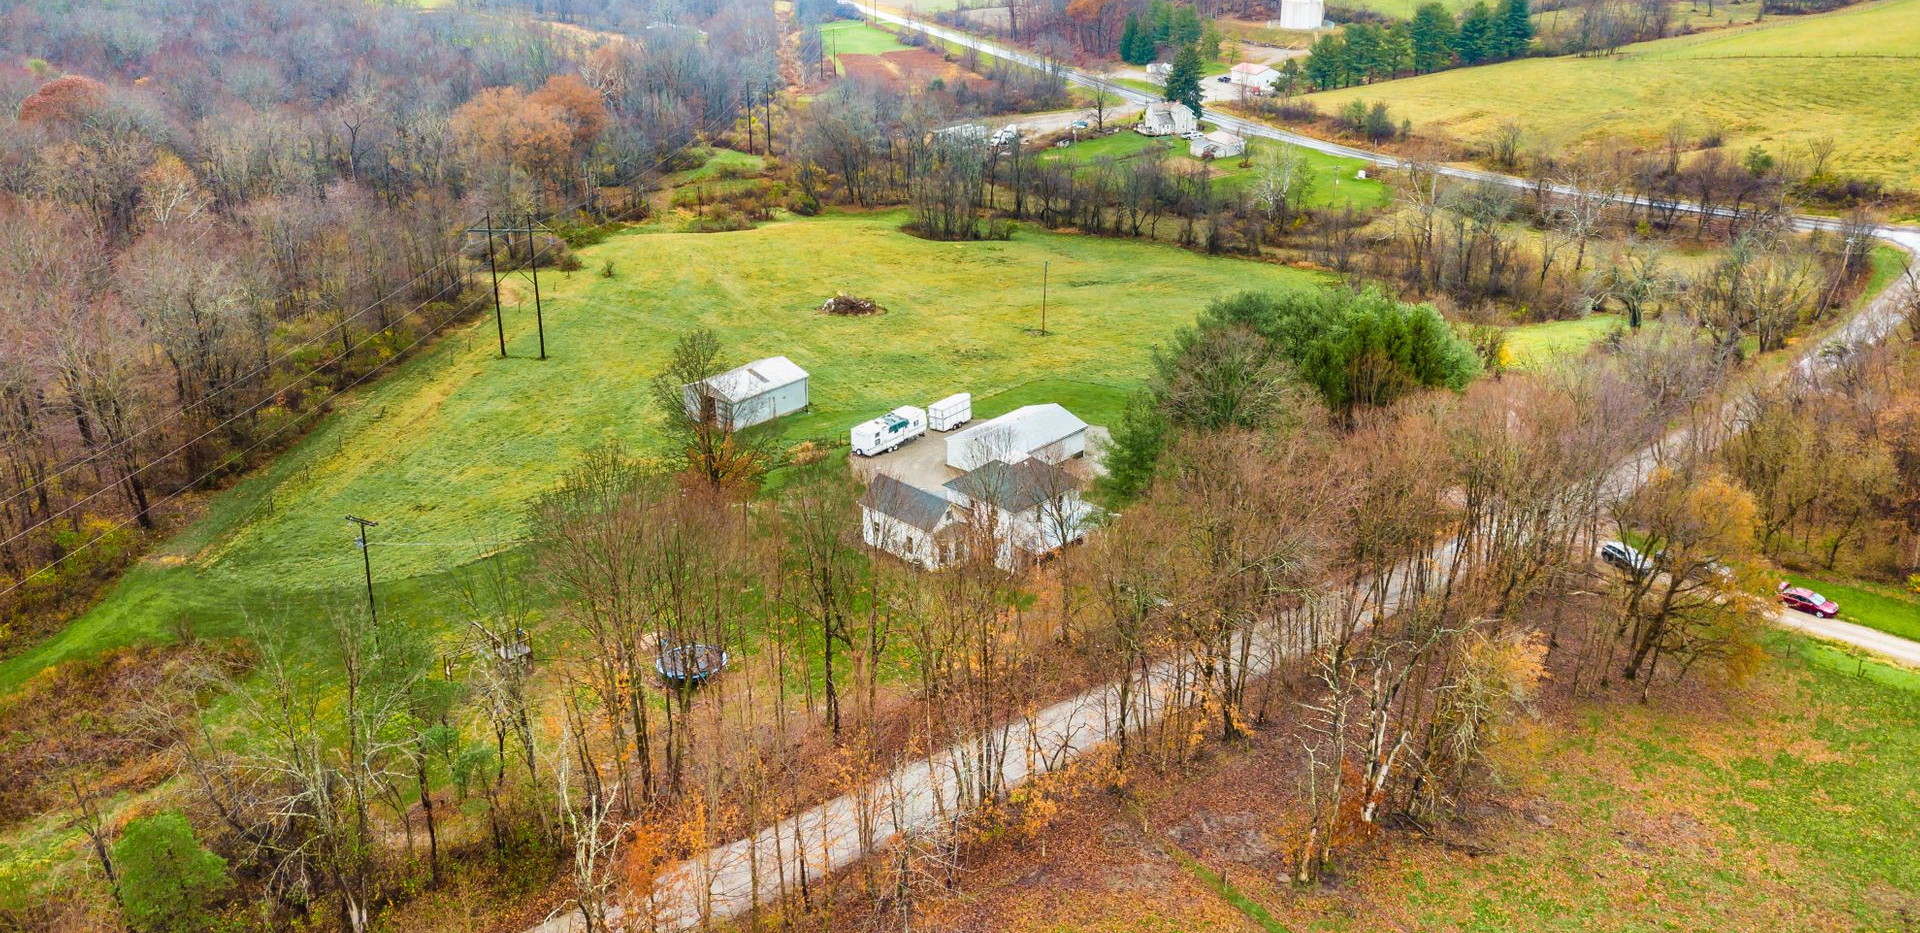 [049] 10563 Wesley Chapel Rd, Mt Perry,